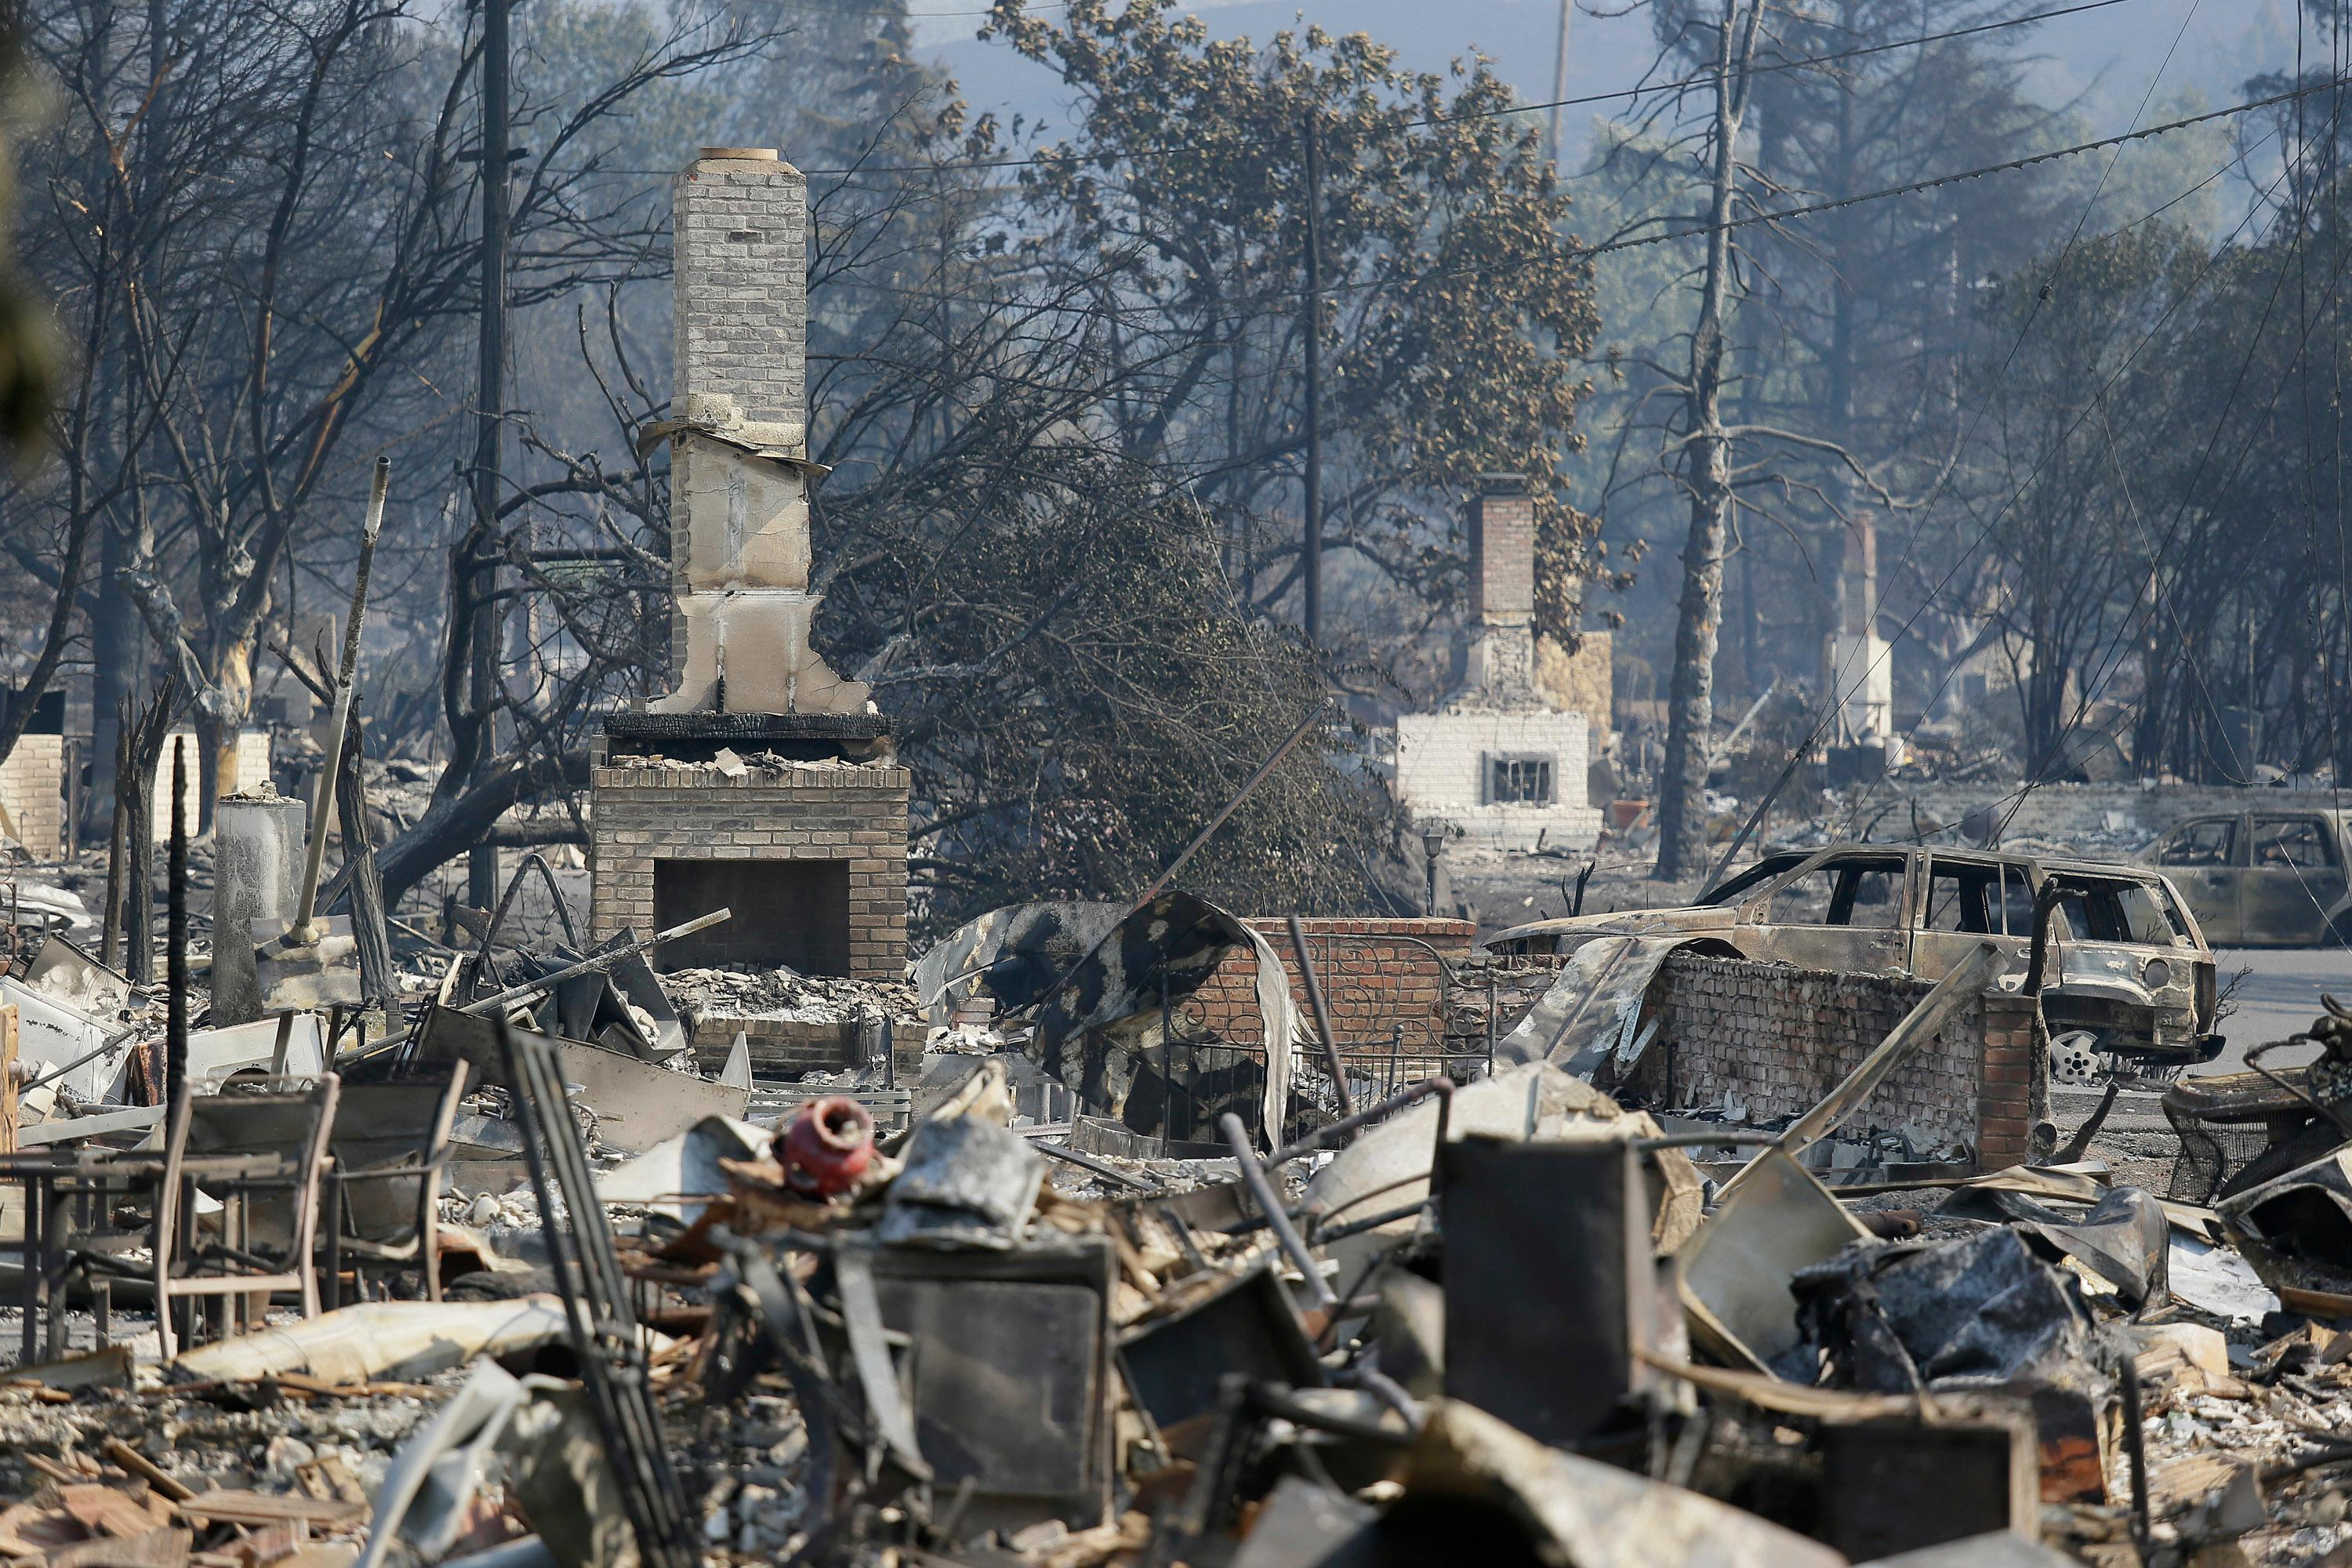 A row of chimneys stand in a wildfire-damaged neighborhood along Mark West Springs Road, Wednesday, Oct. 11, 2017, in Santa Rosa, Calif. Officials say they have thousands of firefighters battling 22 blazes burning in Northern California and that more are coming from nearby states. (AP Photo/Eric Risberg)